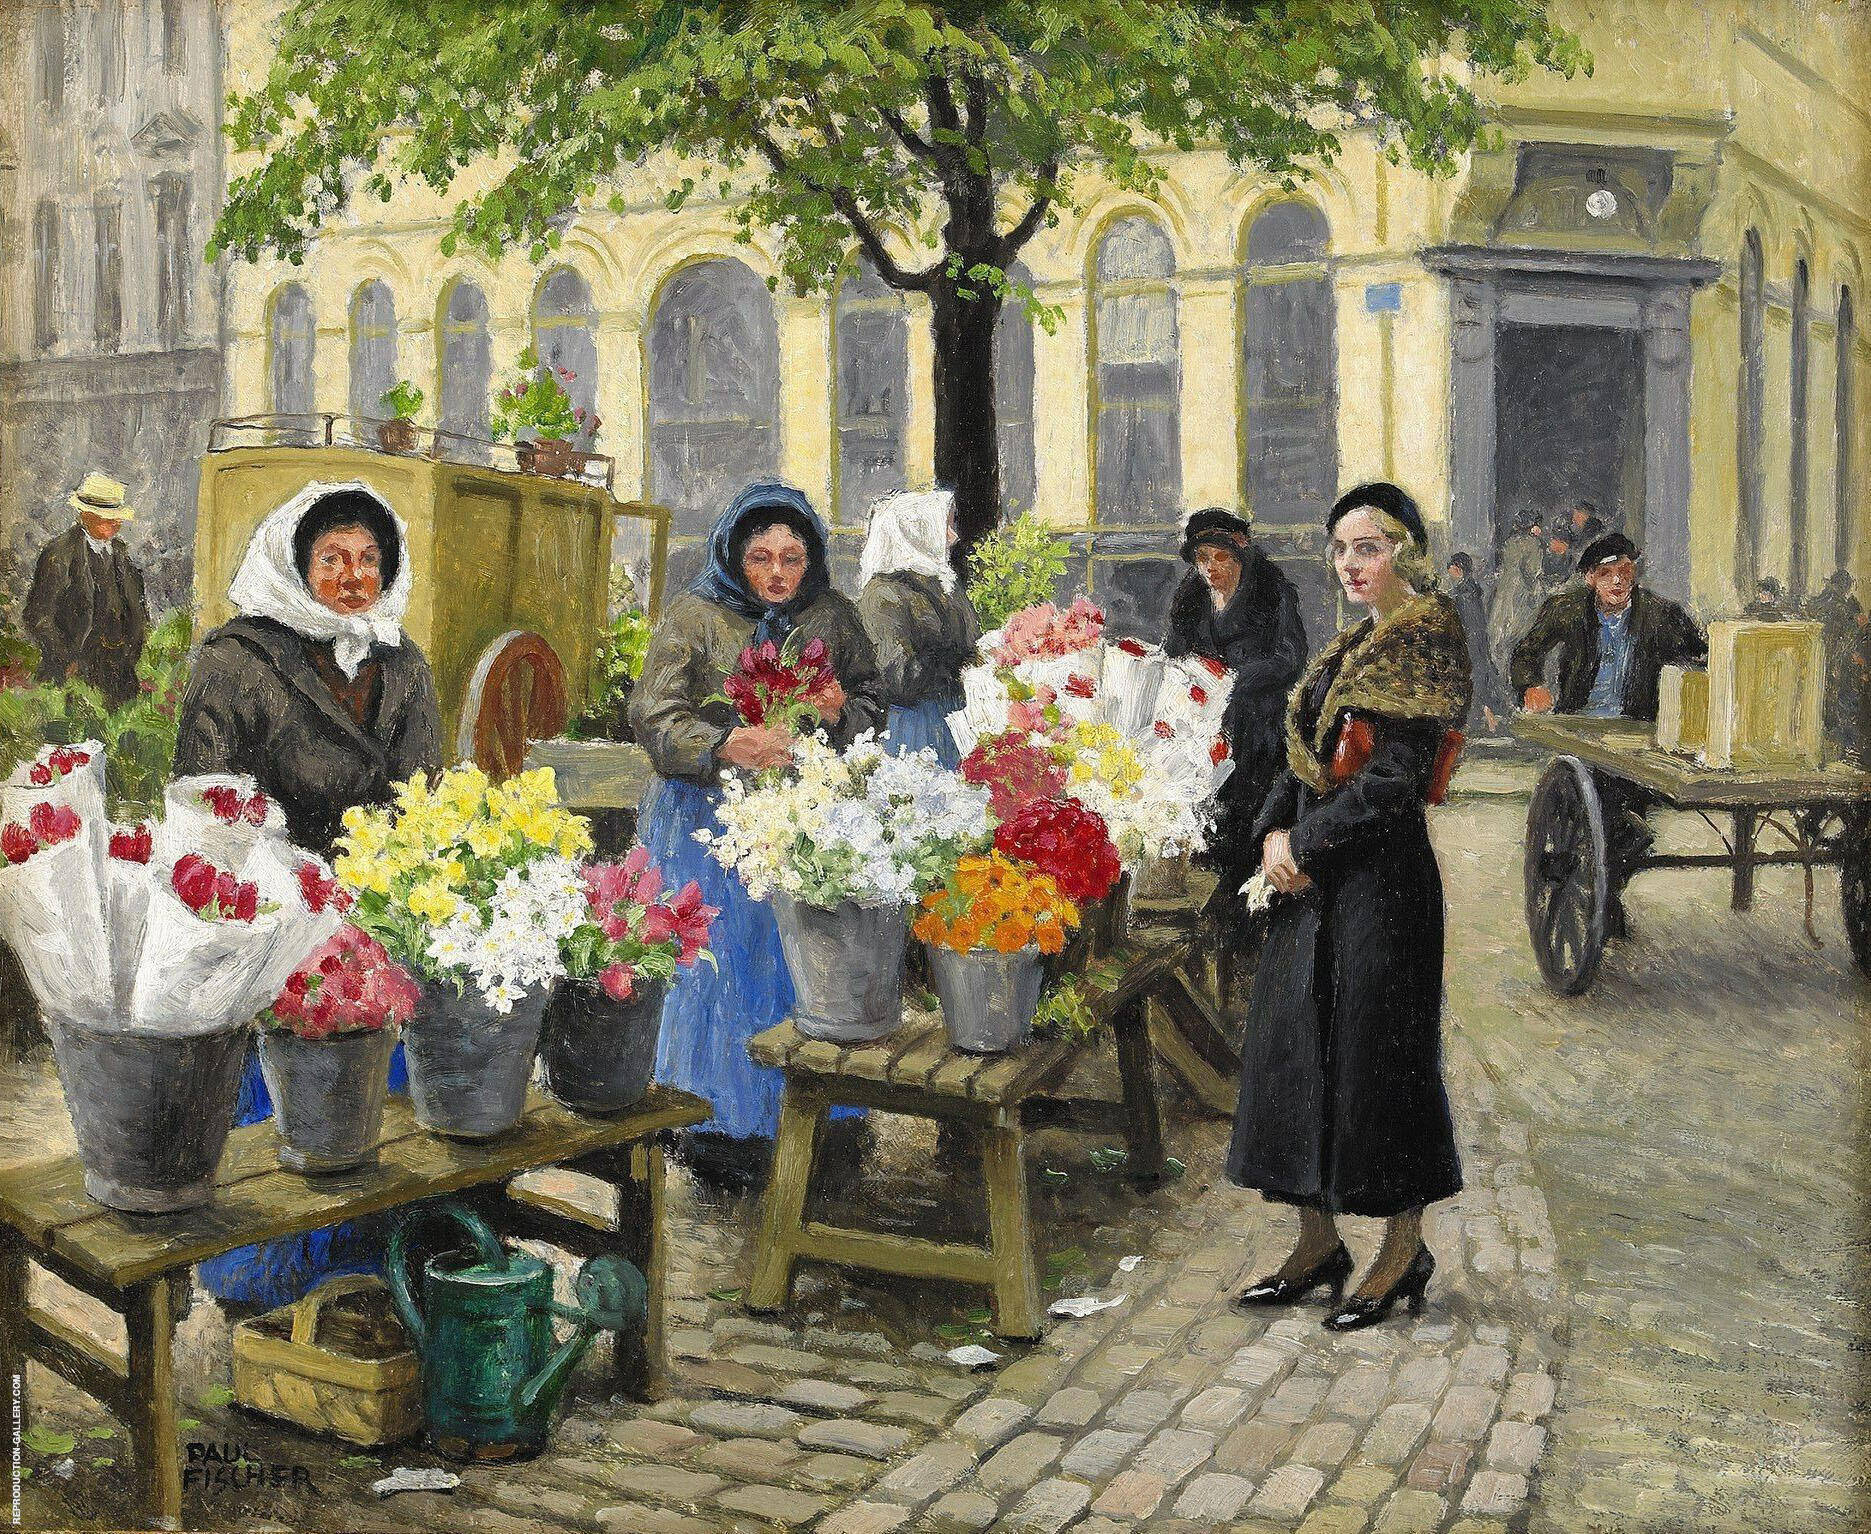 The Flower Market at Hojbro Plads Copenhagen By Paul Gustav Fischer